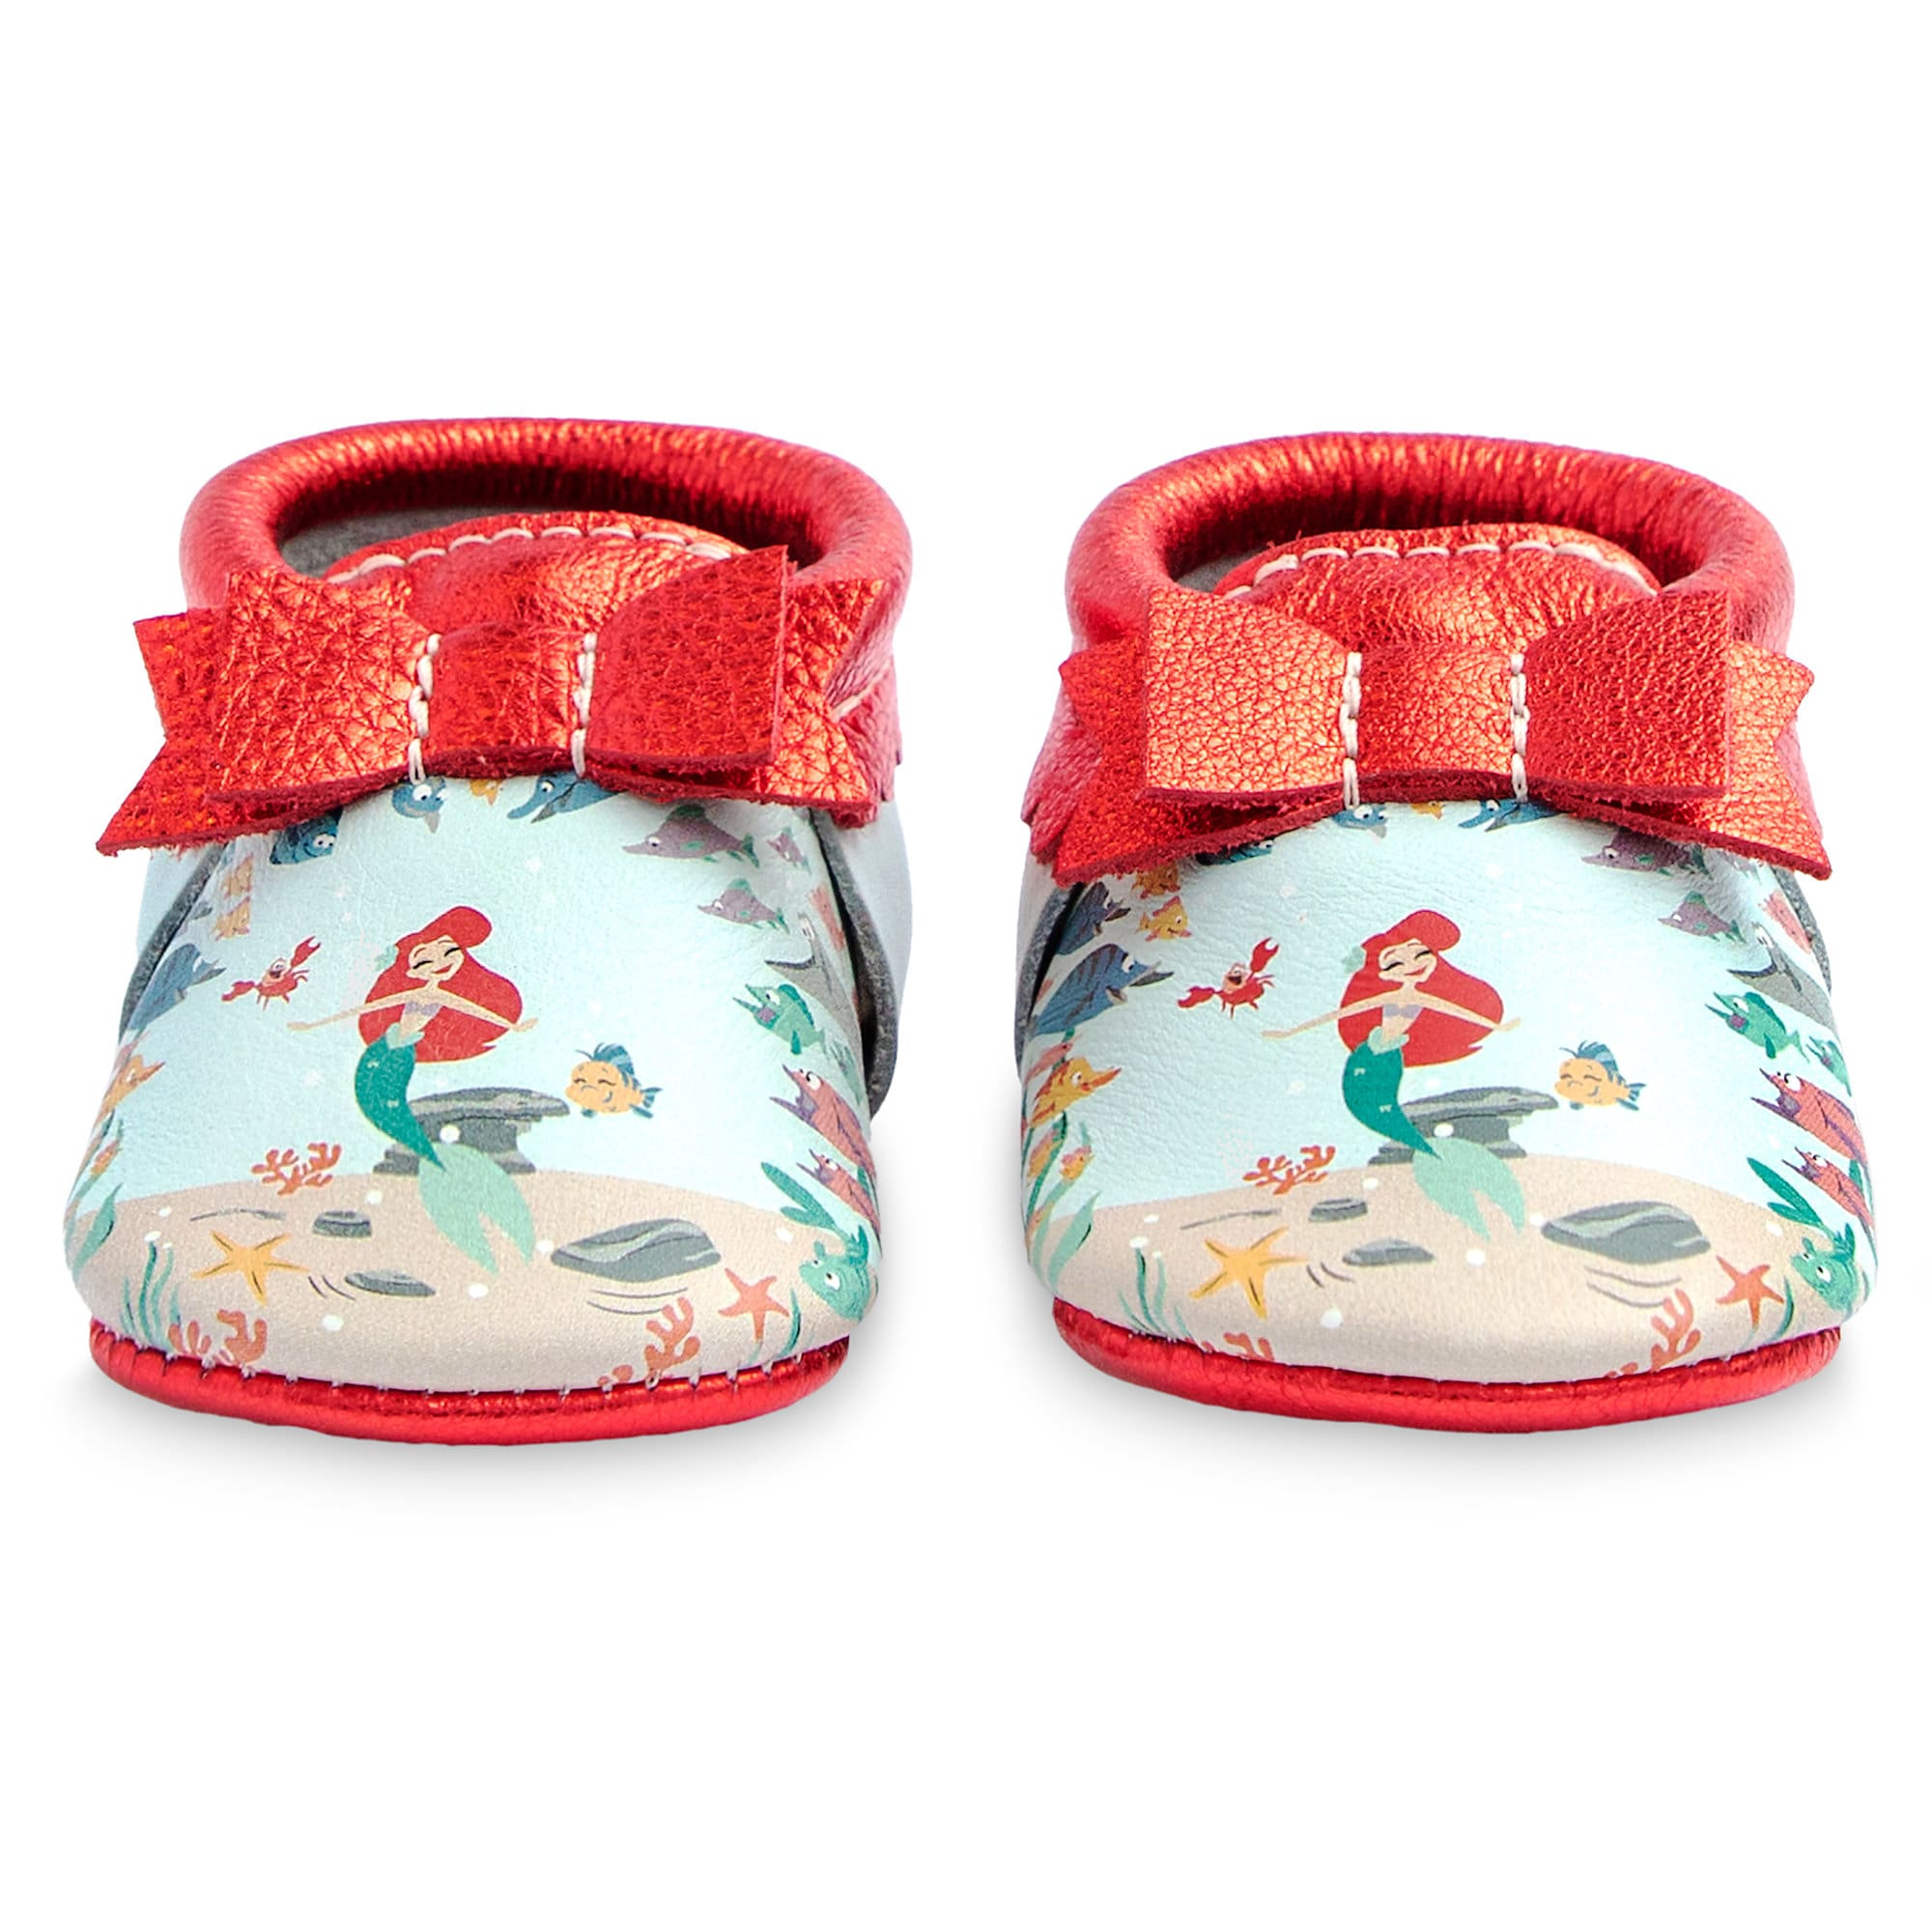 The Little Mermaid Moccasins for Baby by Freshly Picked